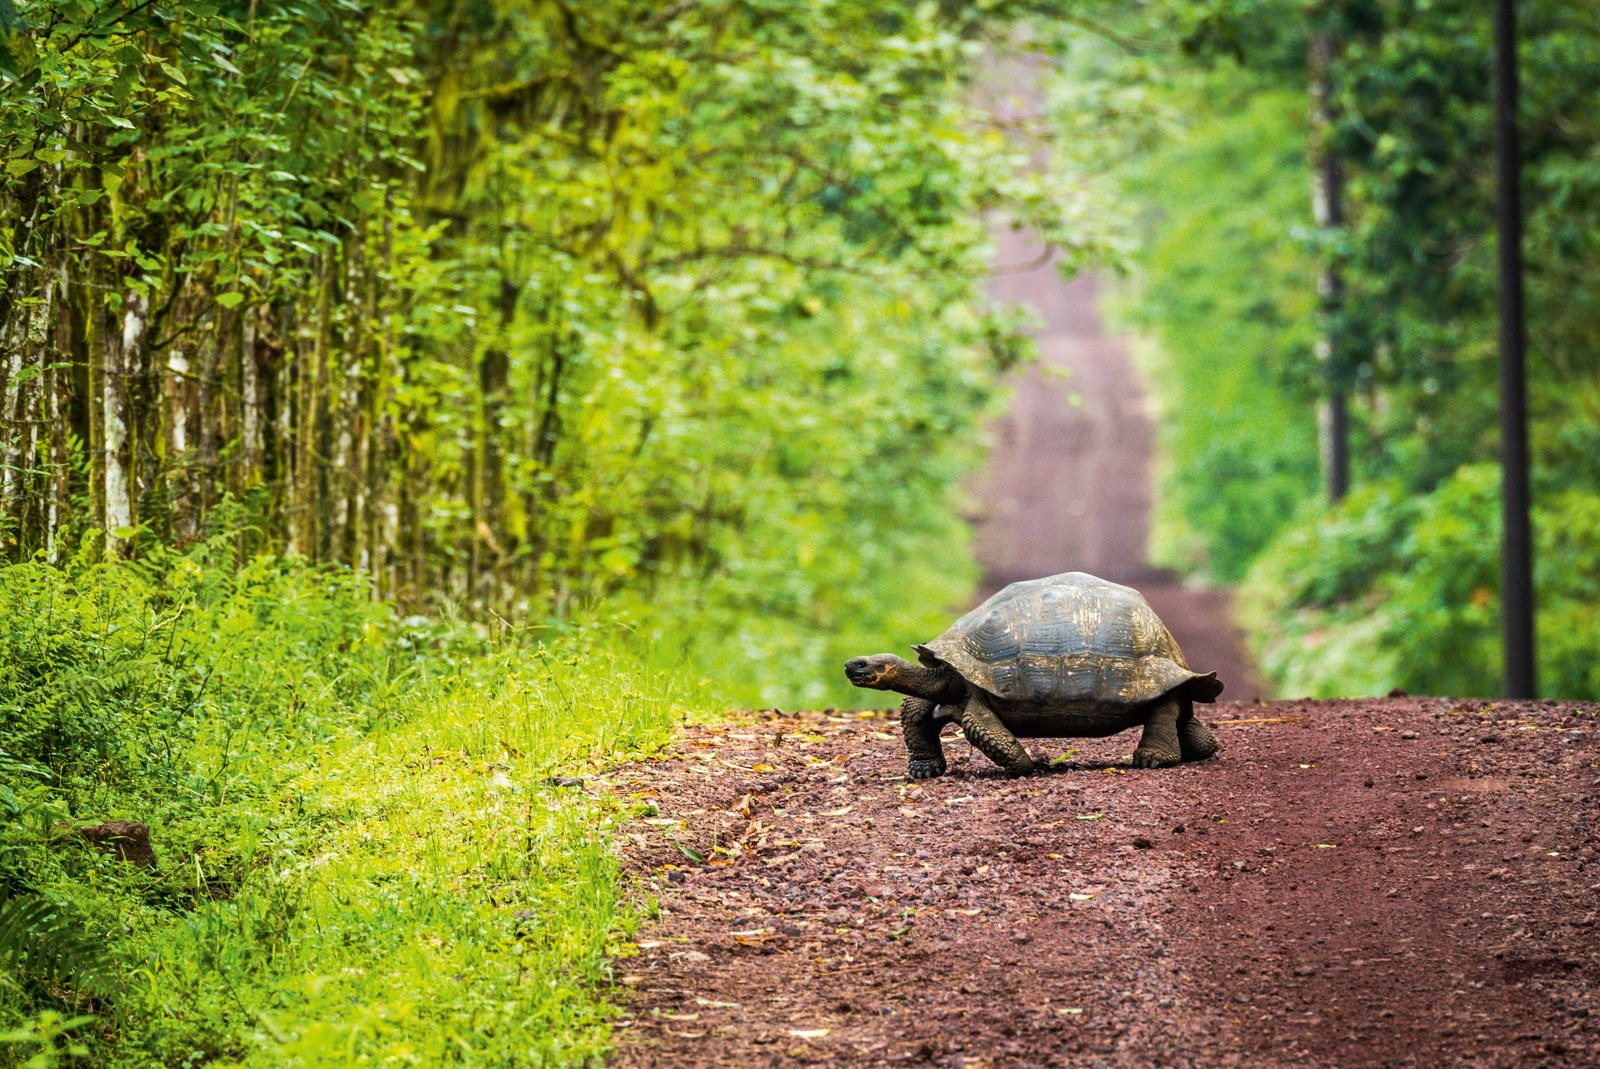 250,000 giant tortoises once roamed the Galápagos. Today, around 35,000 remain.